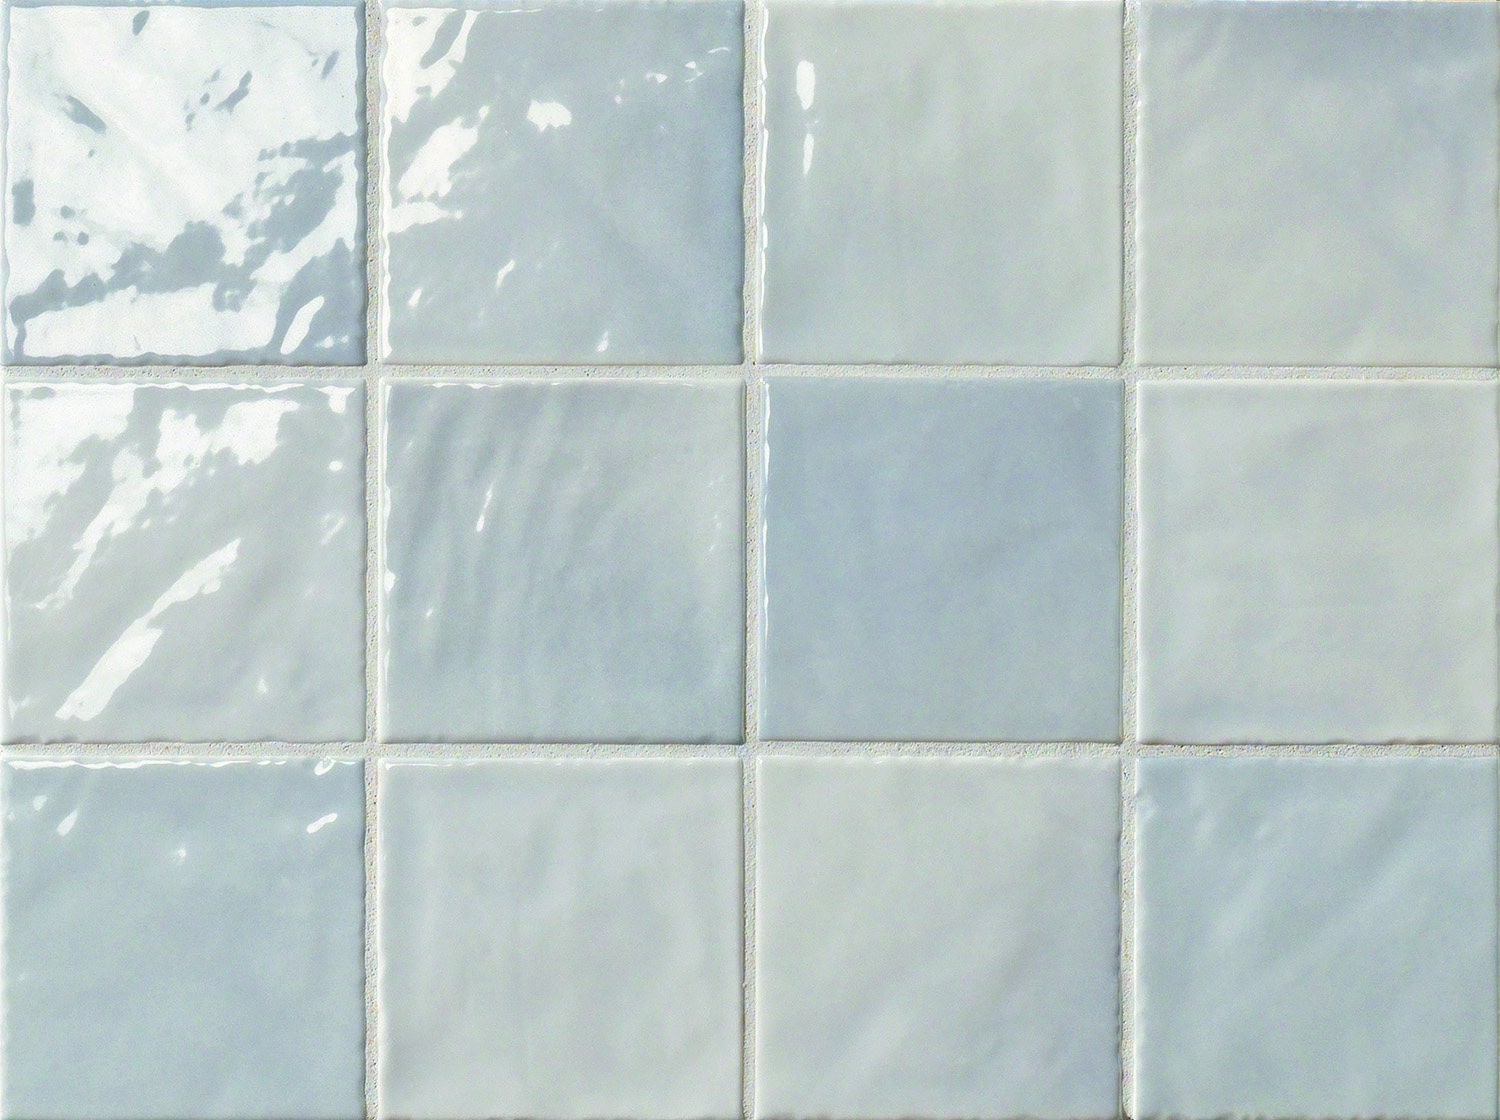 Napoli Perla 100mm X 100mm New Image Tiles